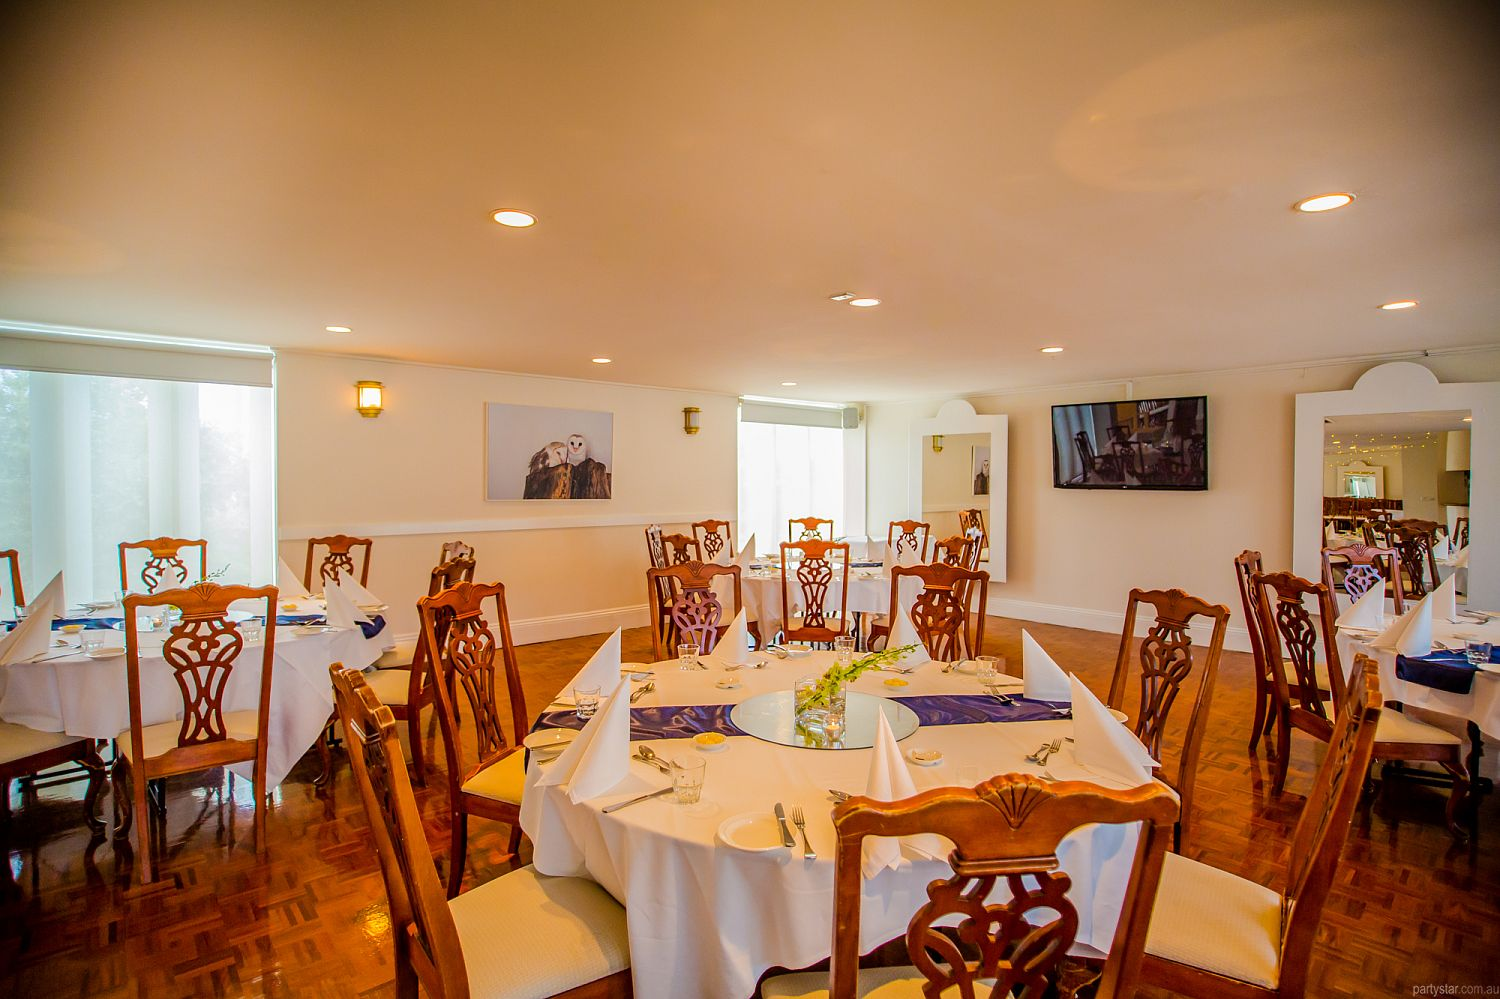 Empire Grill (Upstairs Function Room) in Geelong, VIC